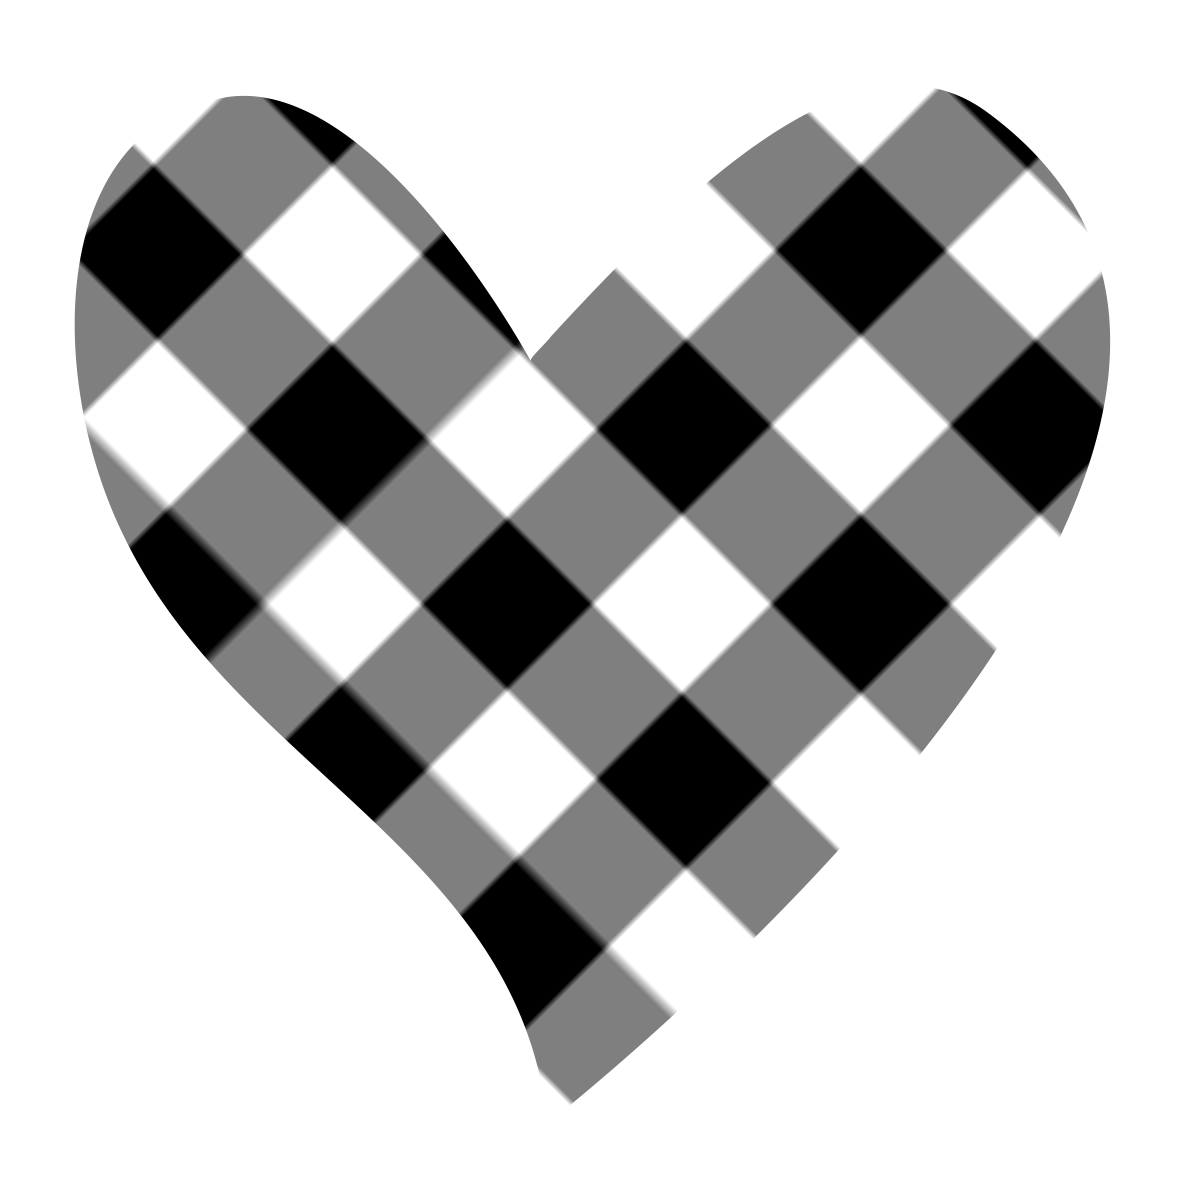 Heartbeat Png Transparent Black: Best Black And White Heart Clipart #20633